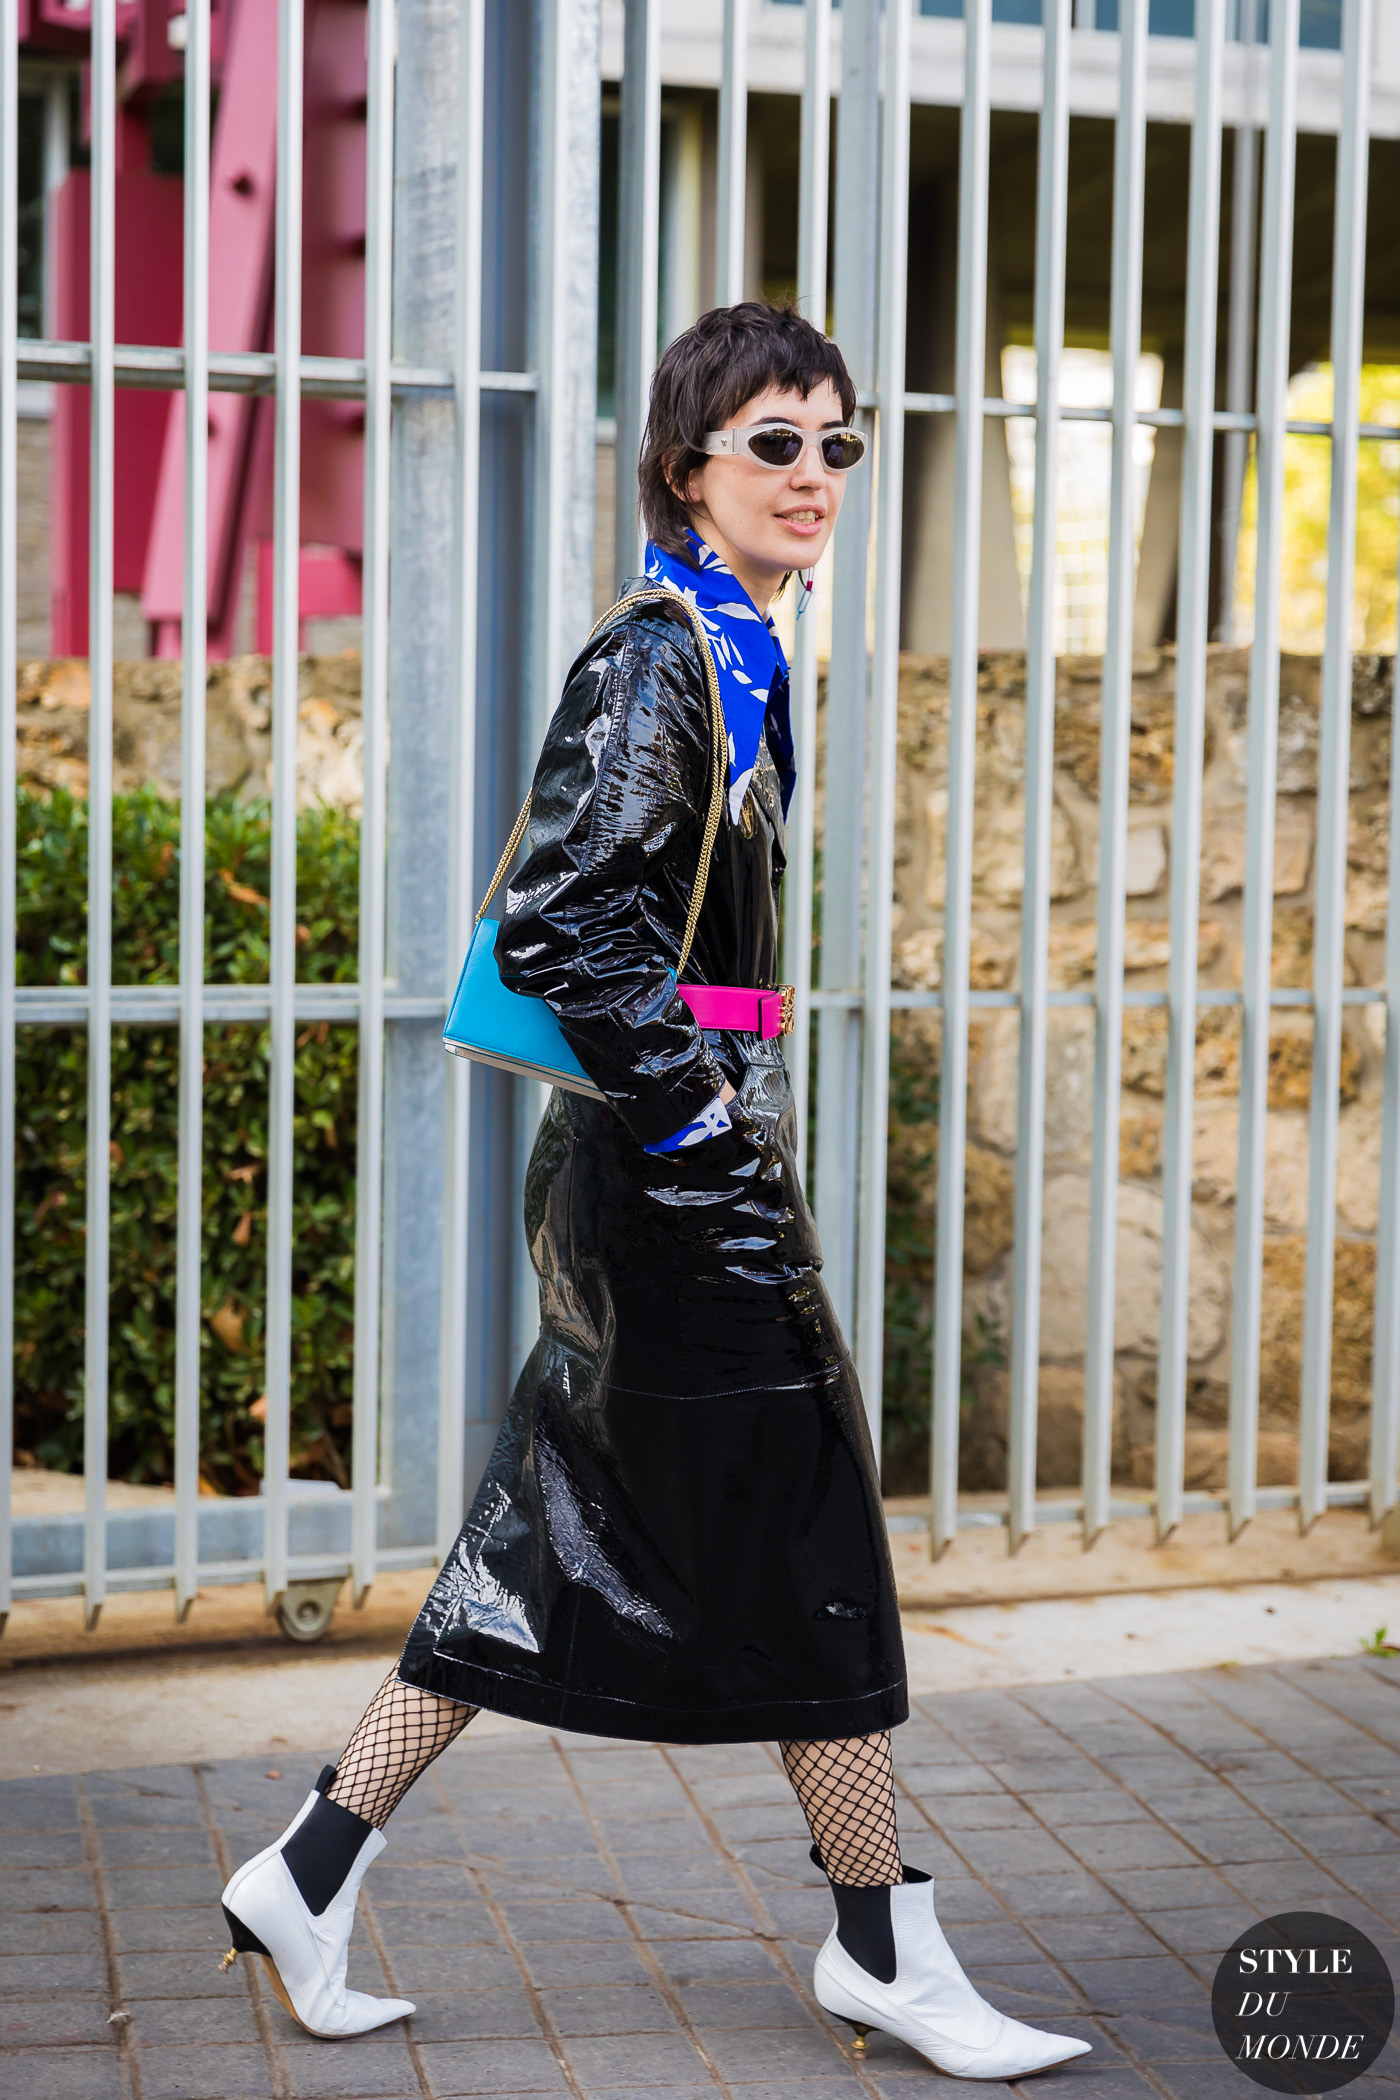 Alicia Padron by STYLEDUMONDE Street Style Fashion Photography_48A1555